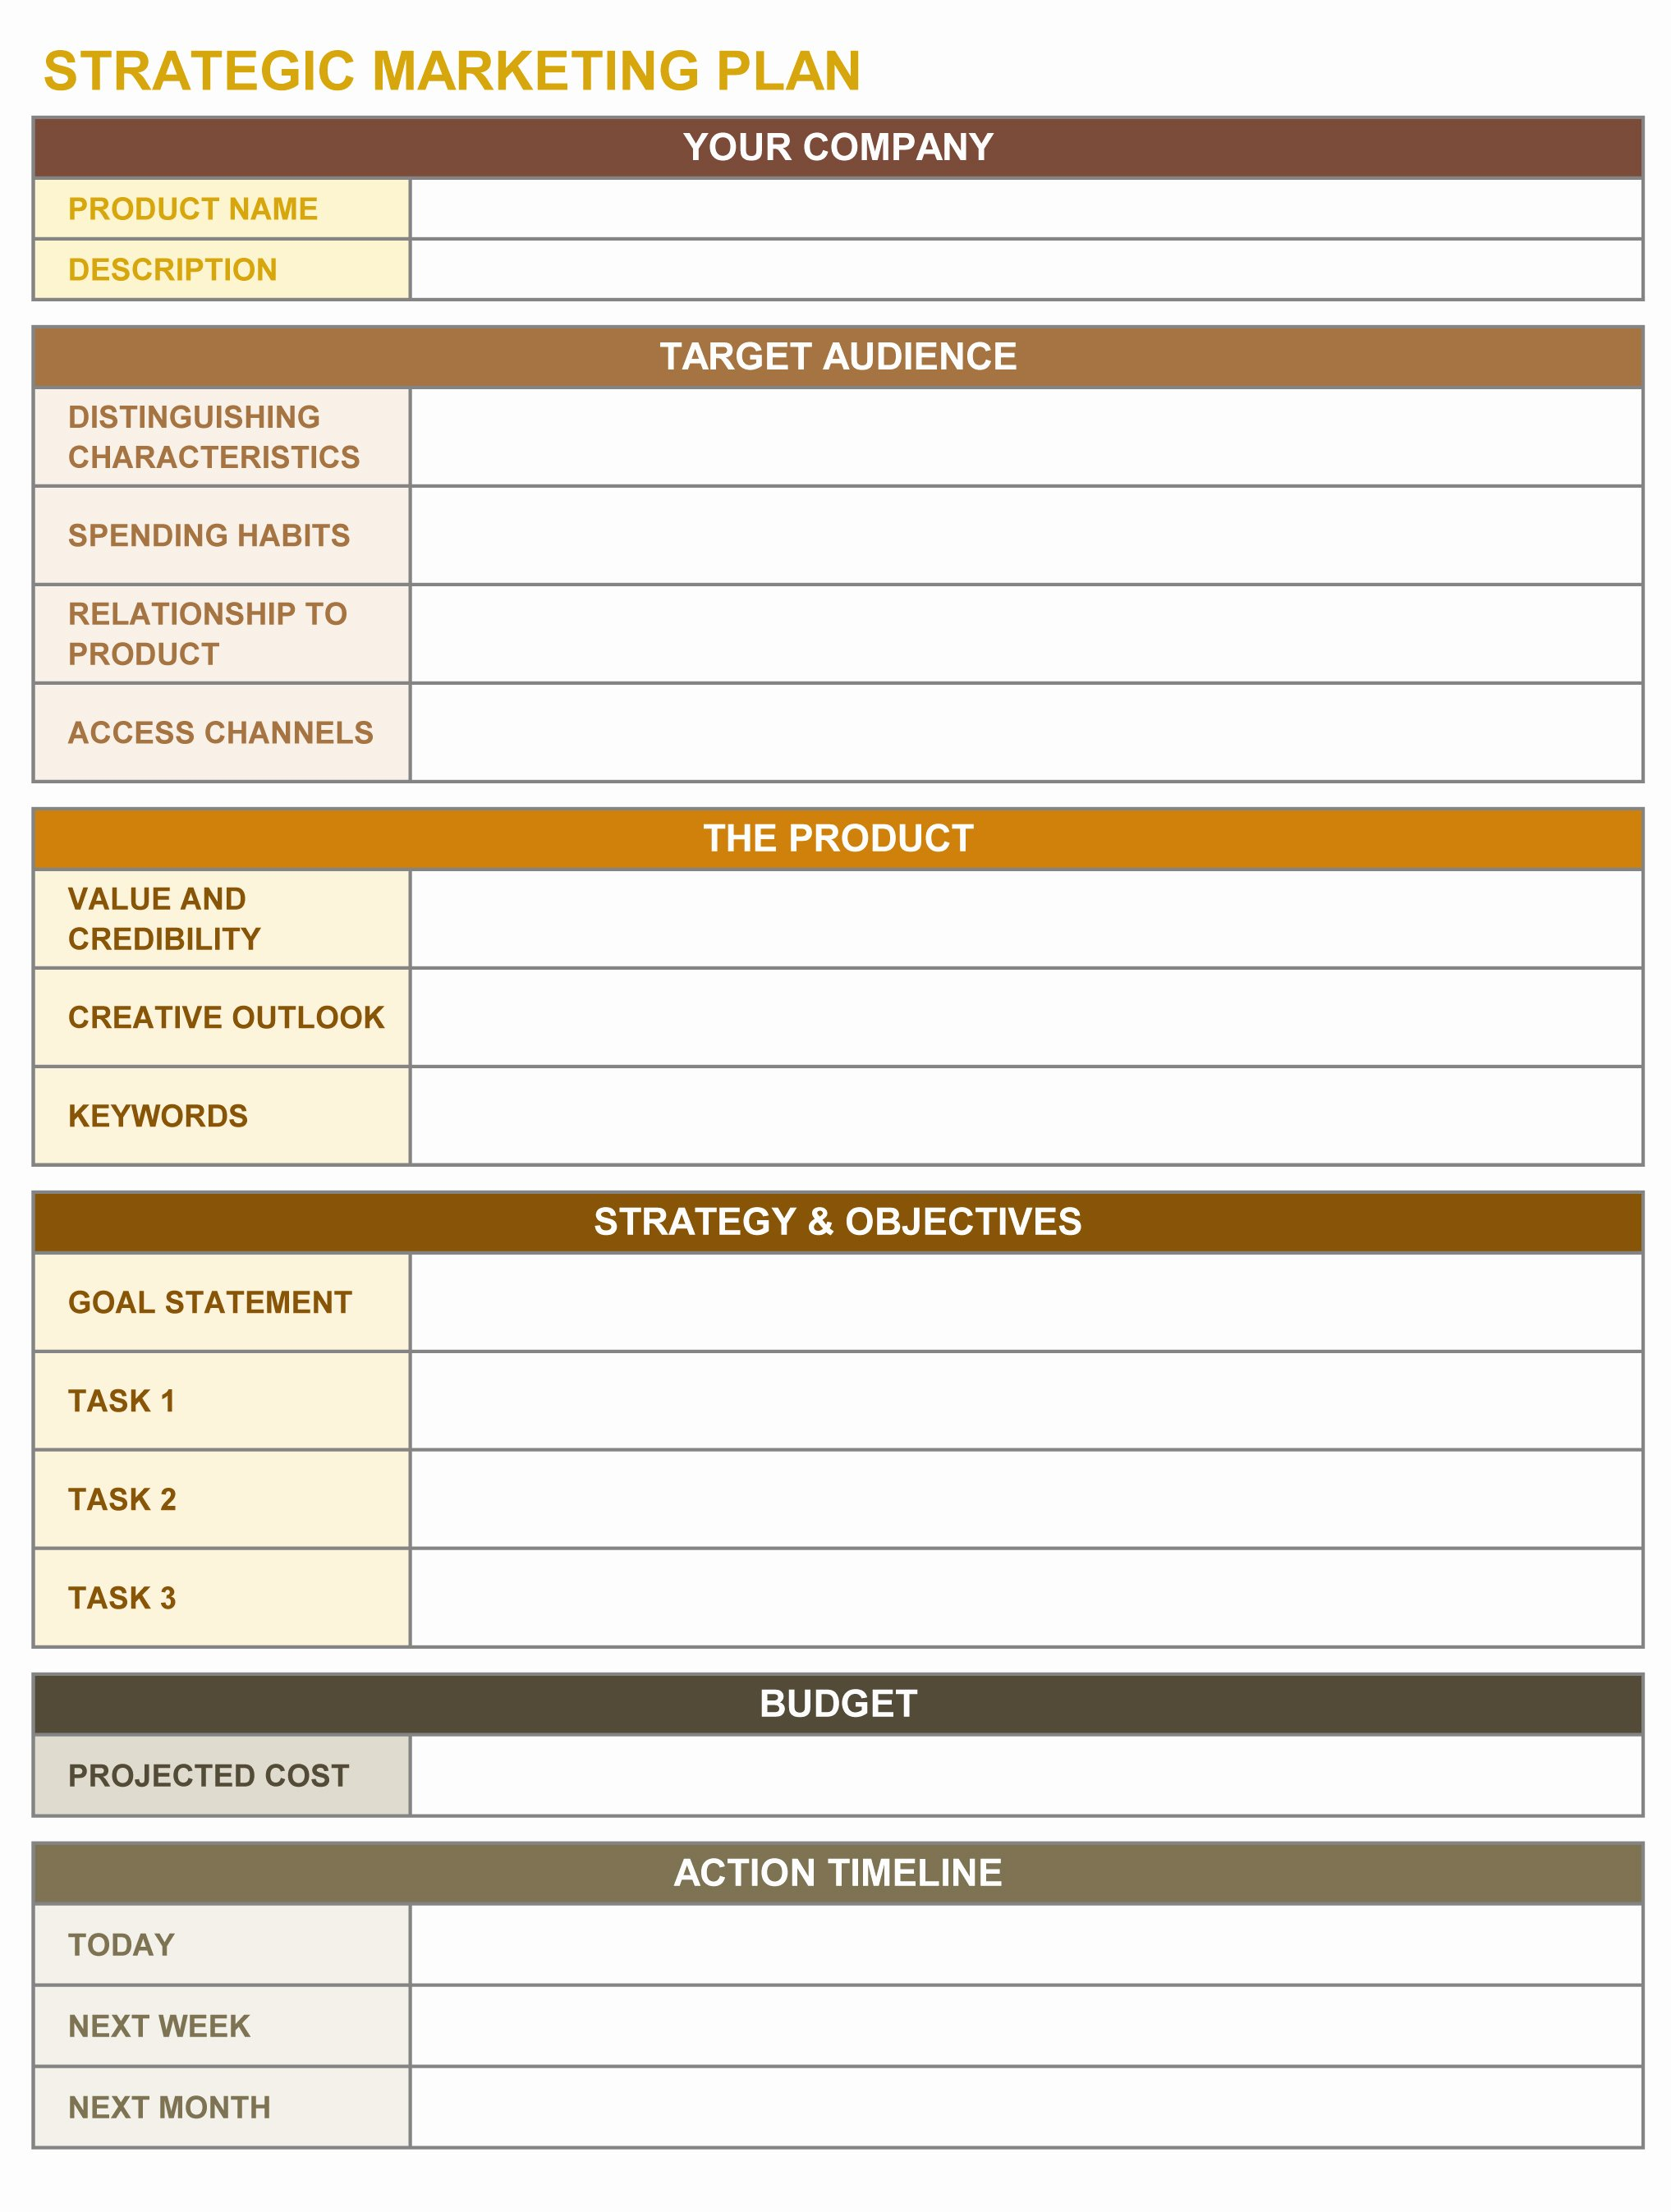 Marketing Plan Template Excel Awesome 9 Free Strategic Planning Templates Smartsheet